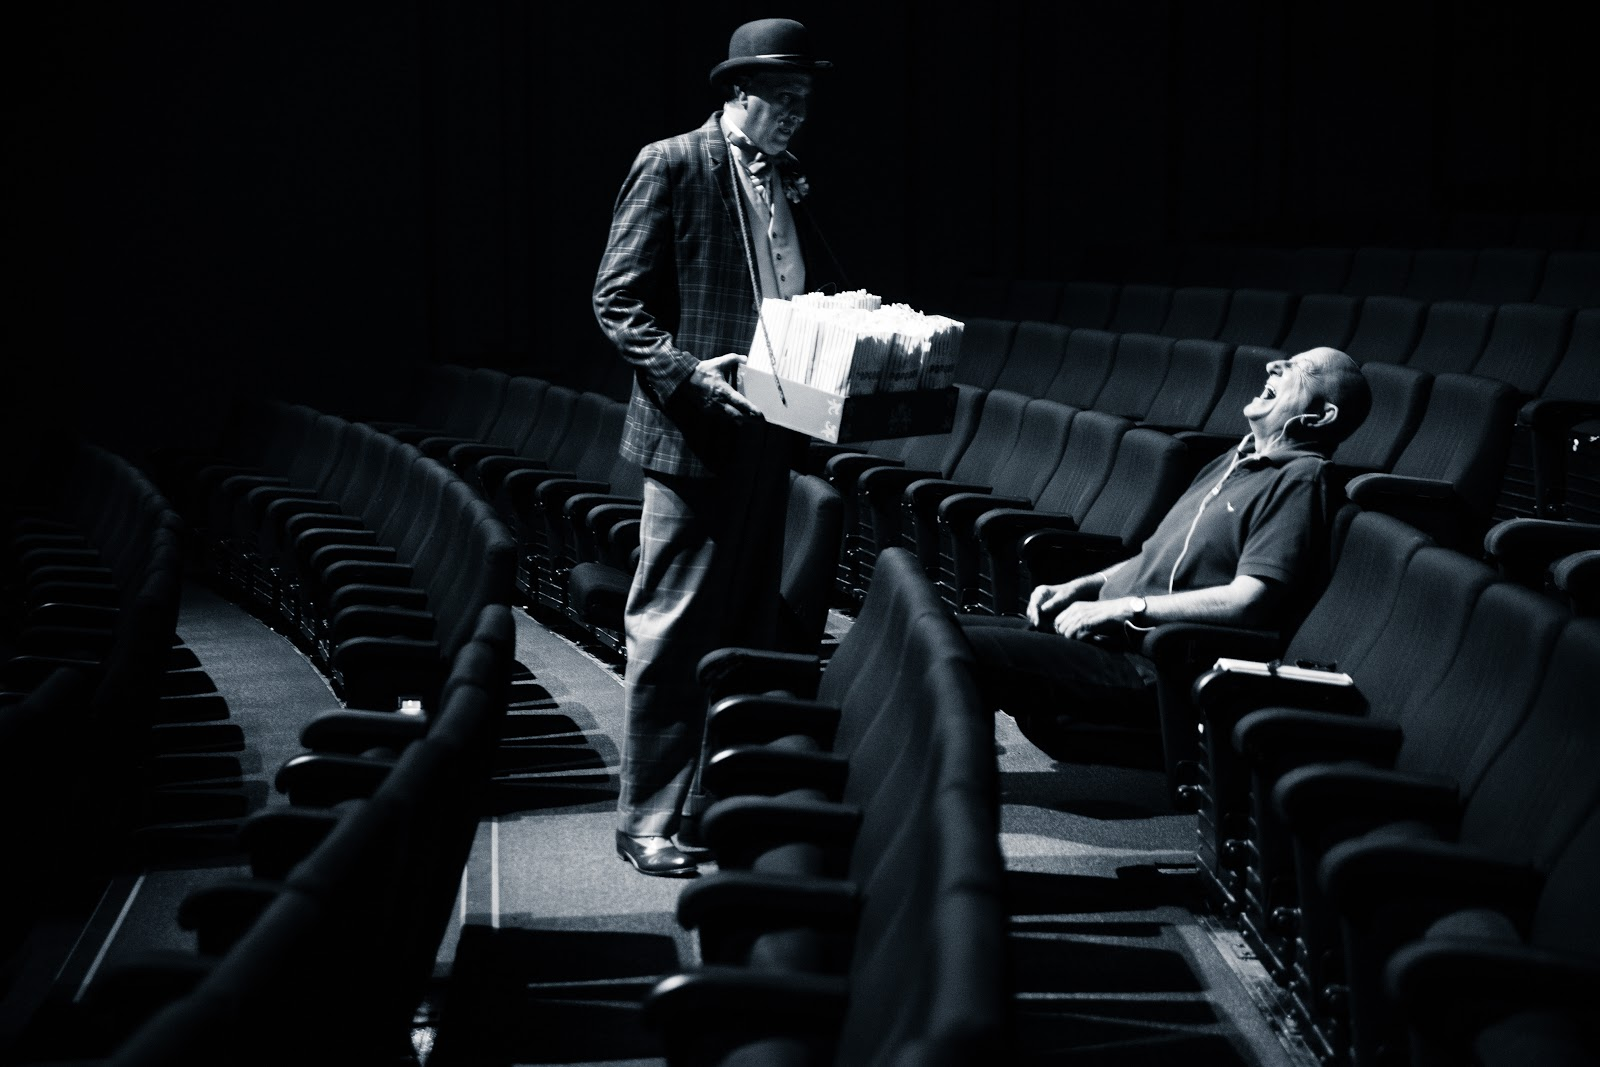 In an almost empty theater, a popcorn man (the clown of the shows) stands in front of an audience member, who is throwing his head back in laughter at something the popcorn man did.